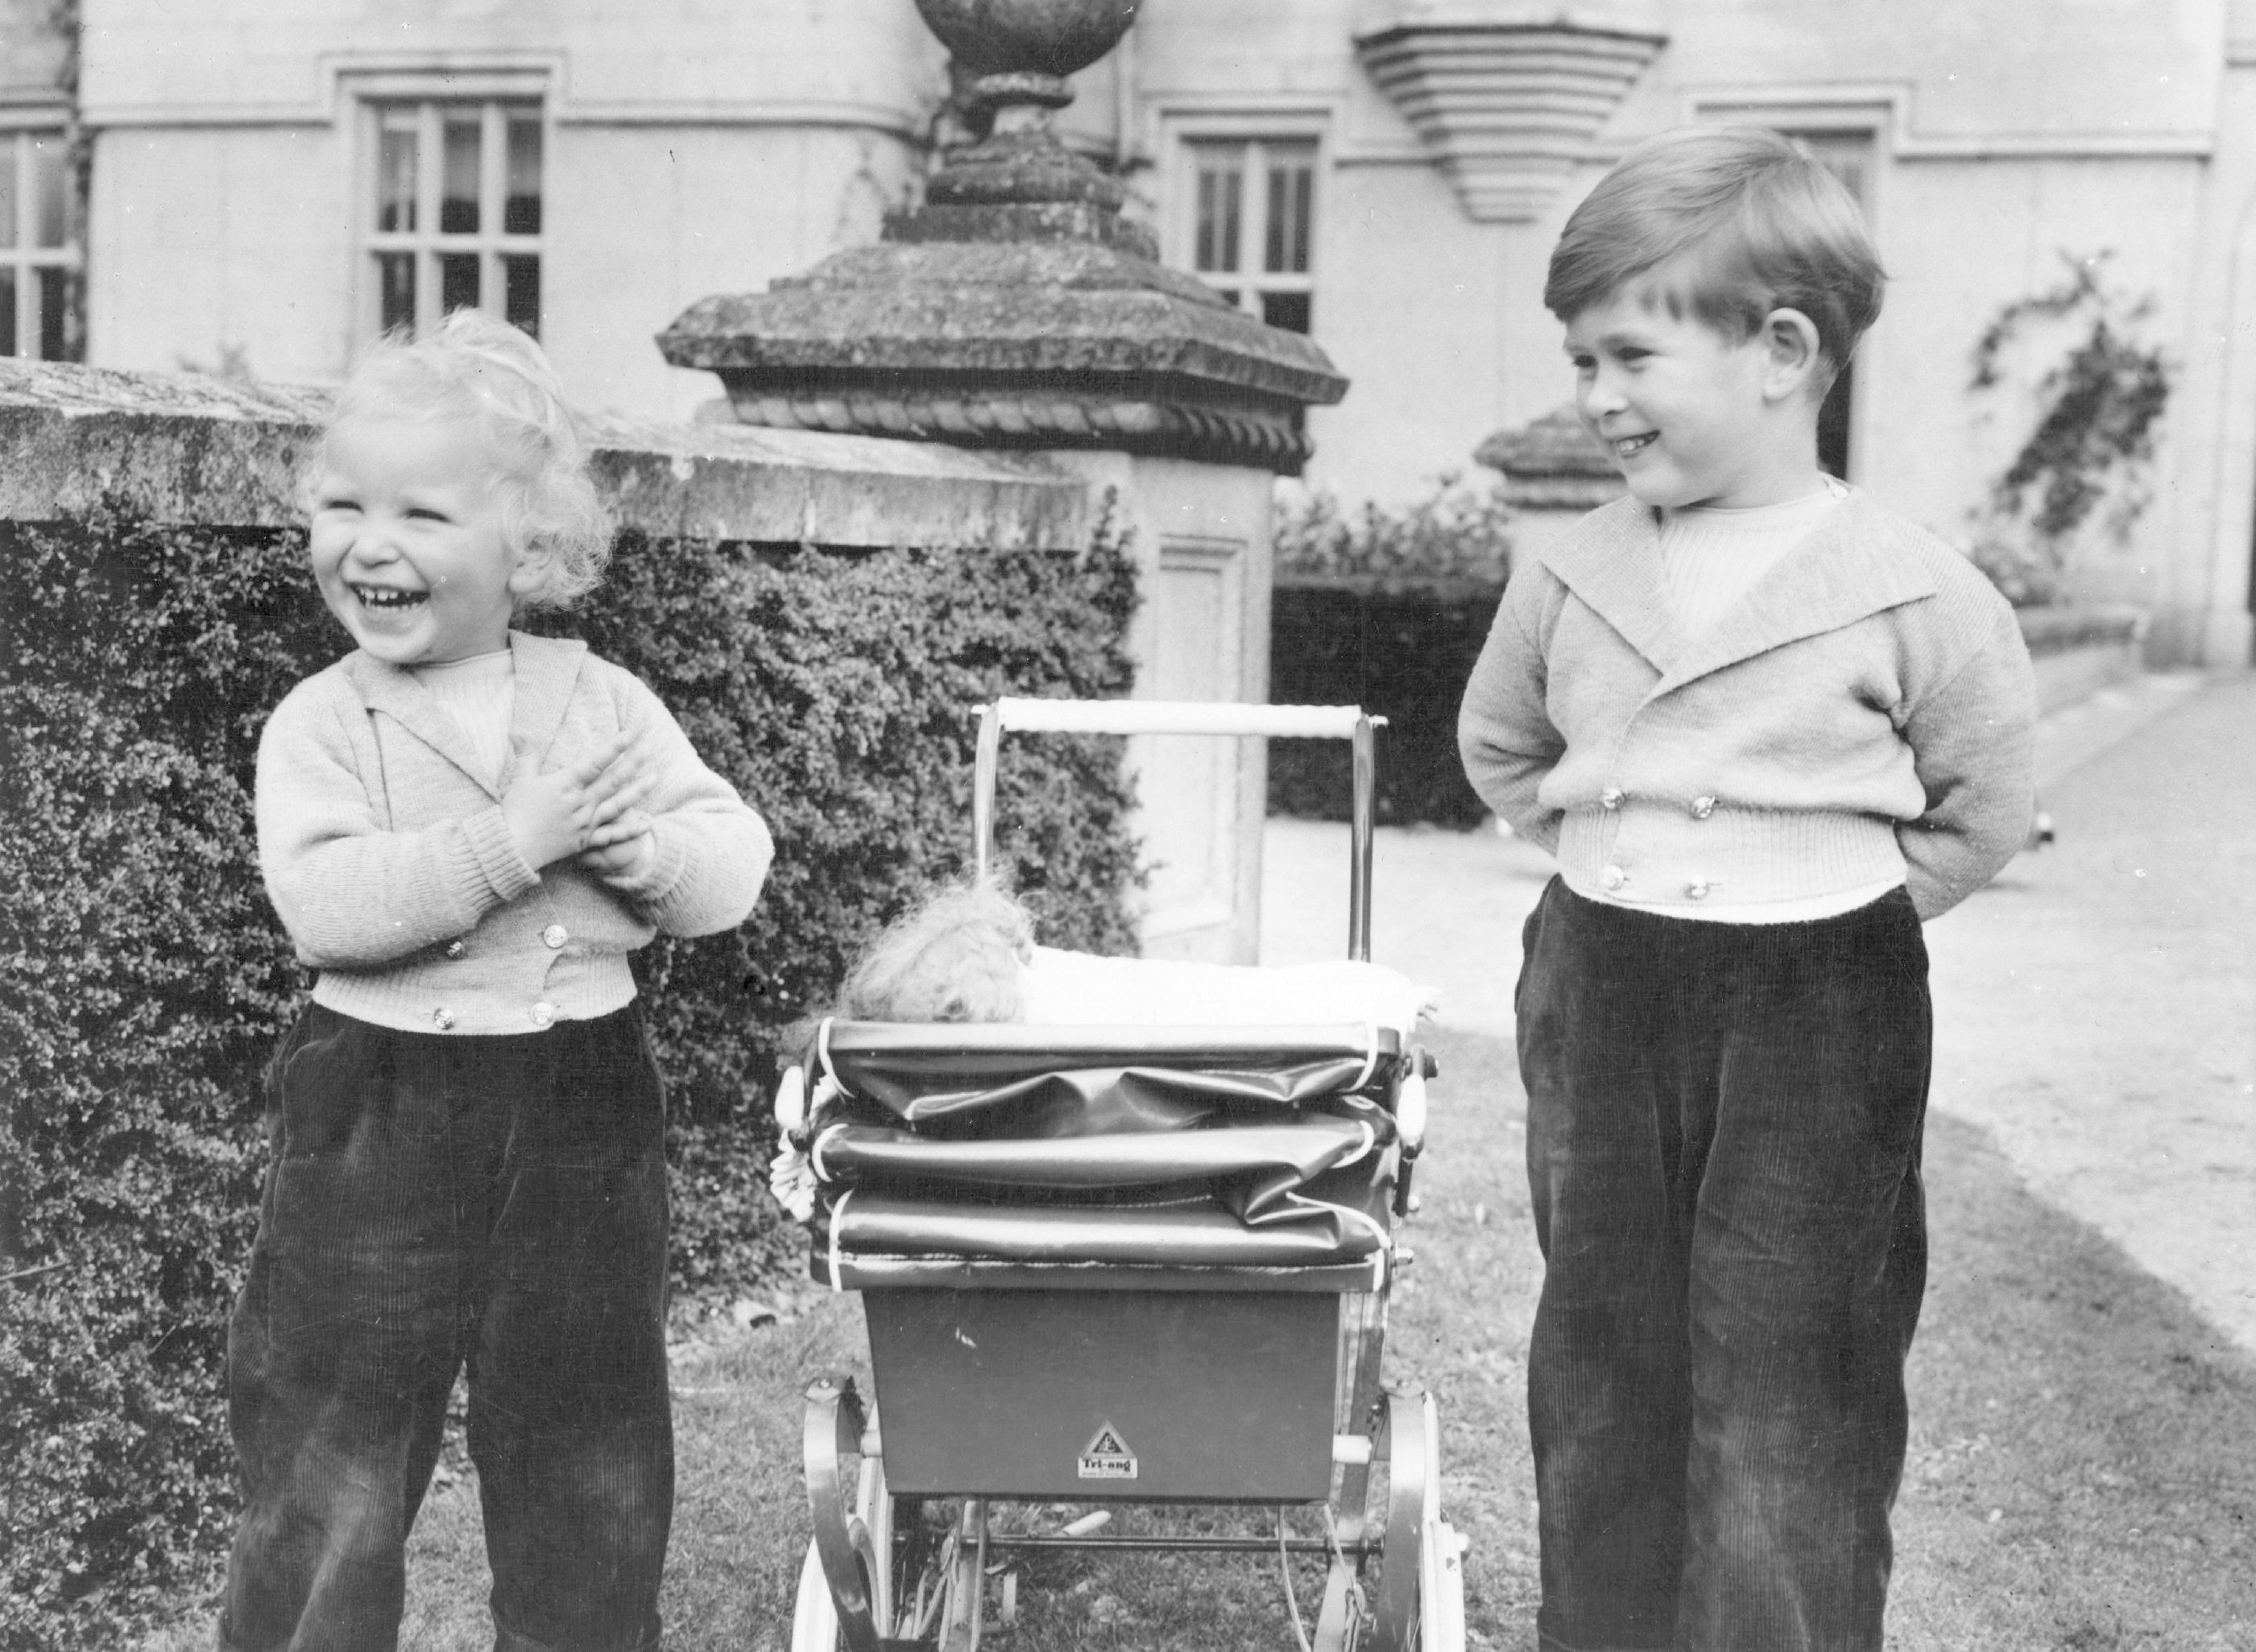 Princess Anne and Prince Charles playing outdoors in 1952. They're both wearing trousers and blazers for informal play.